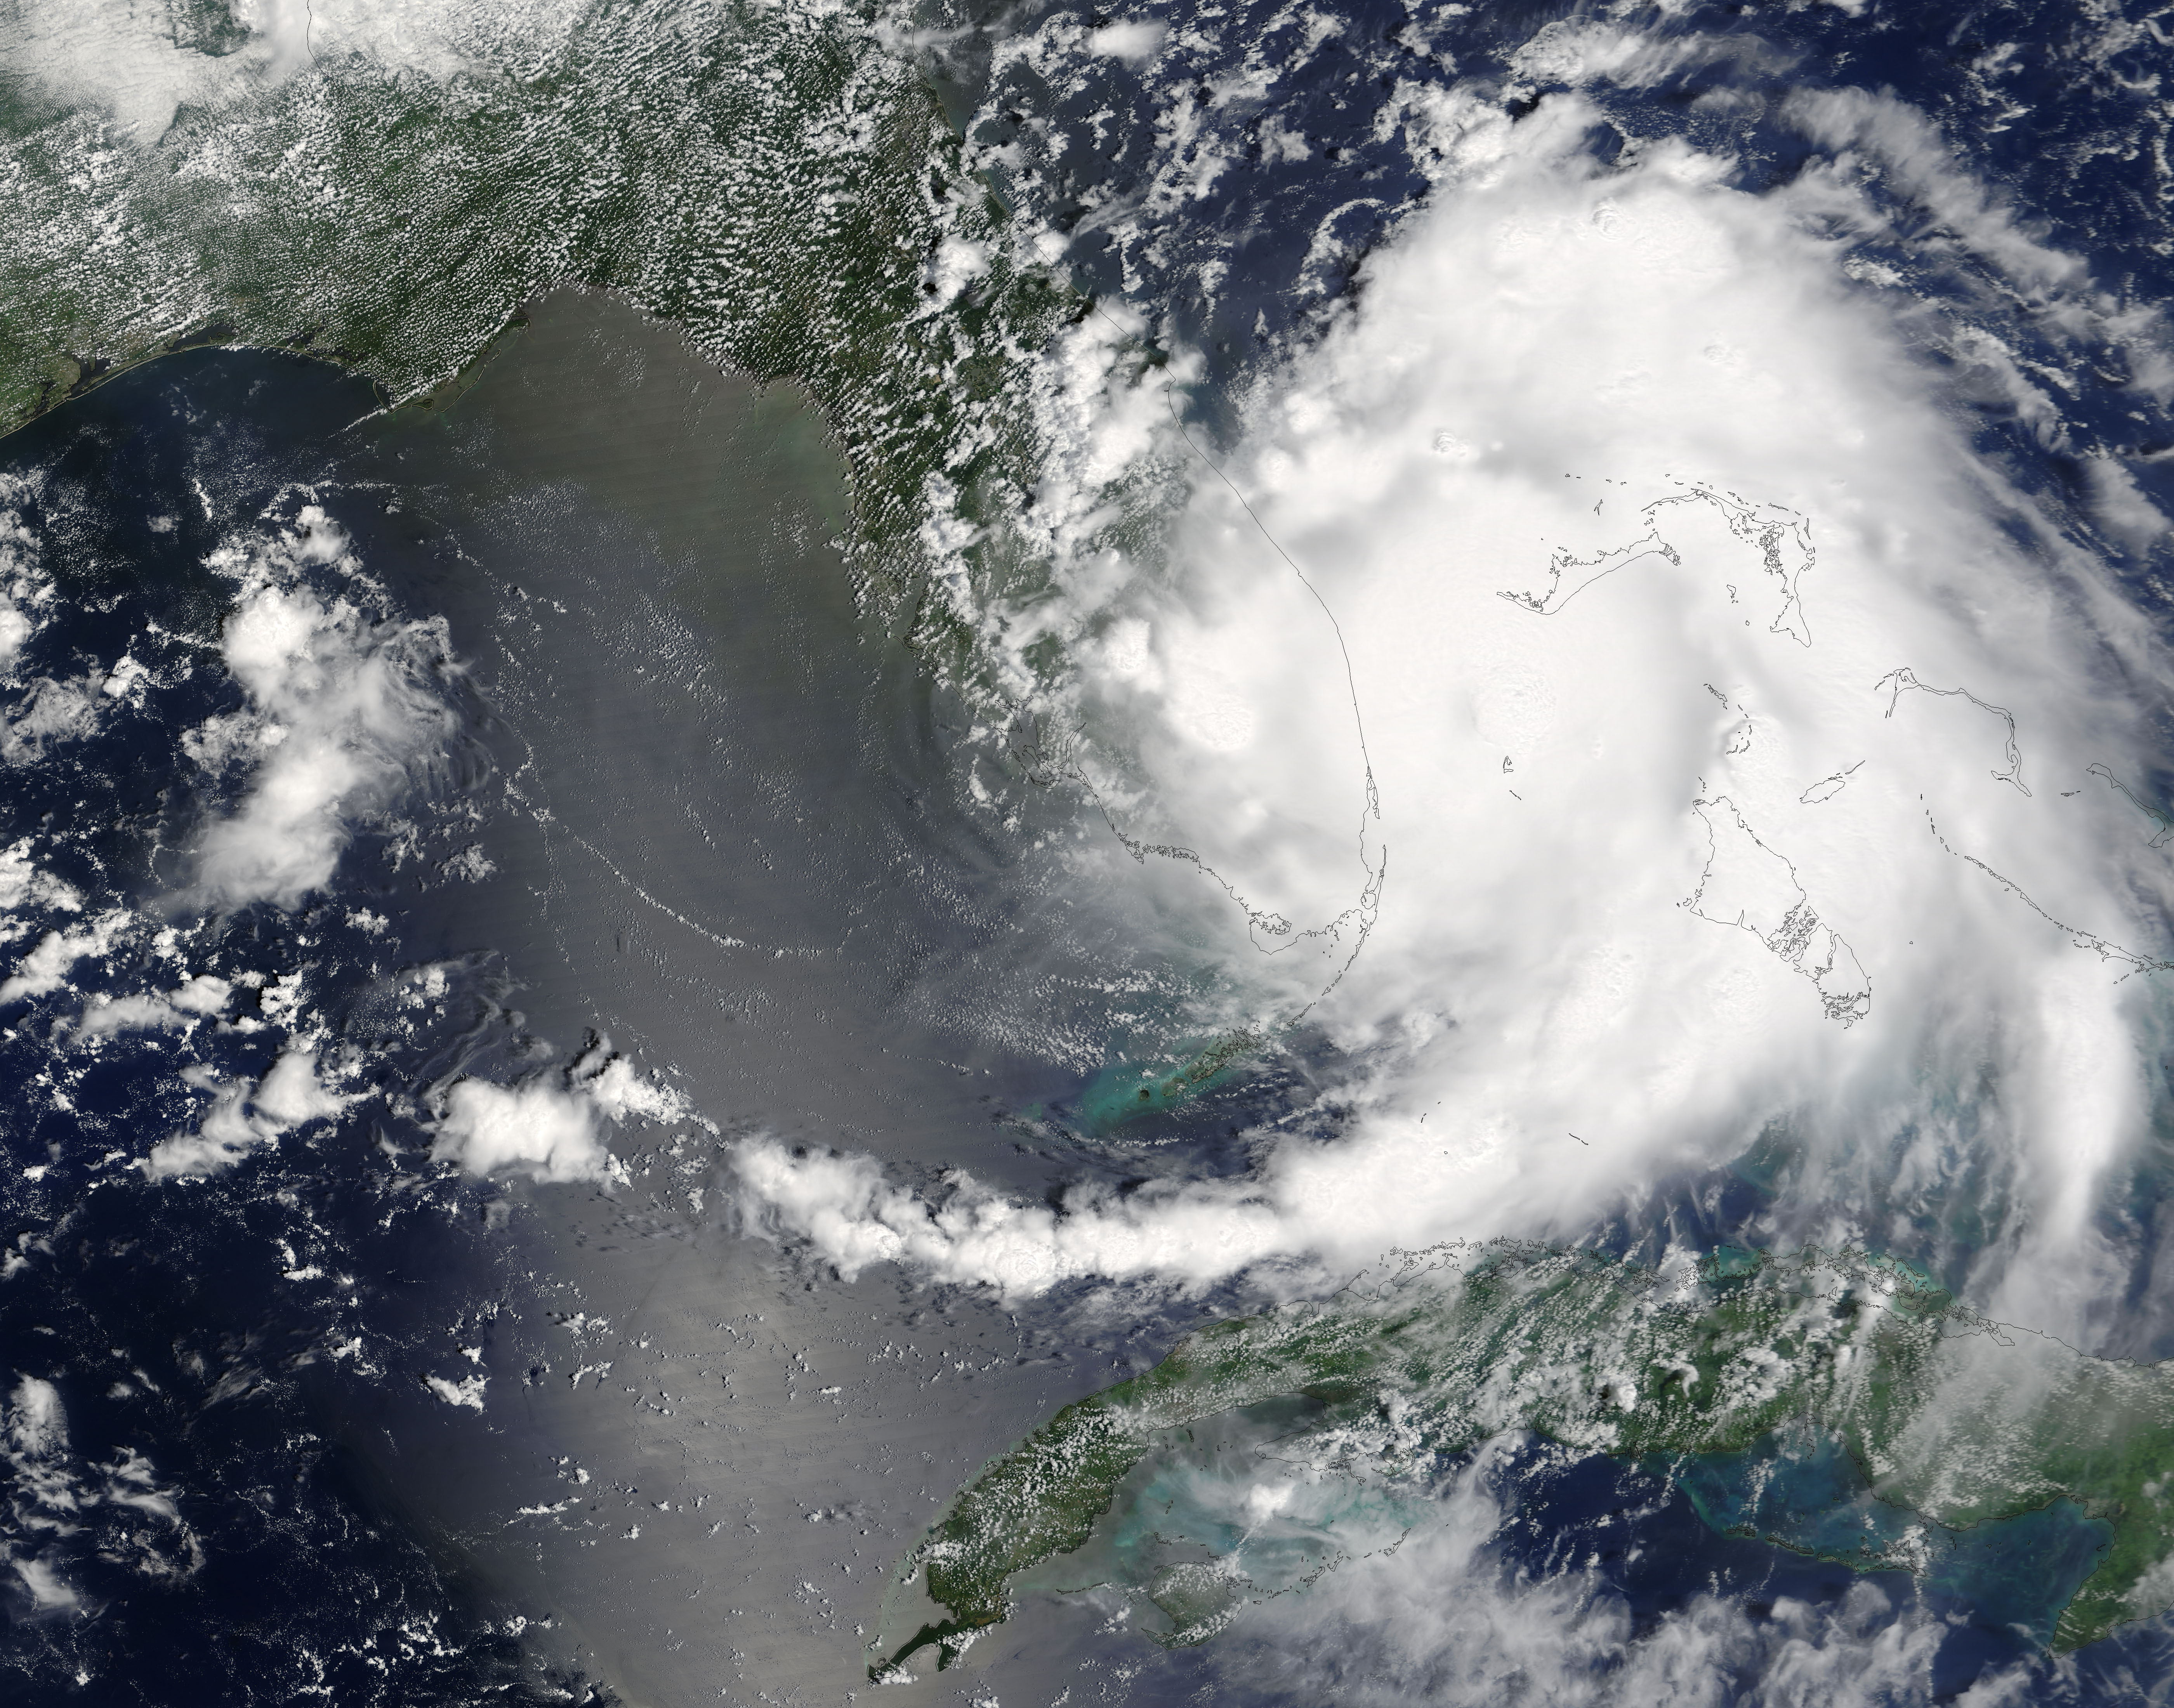 hurricane katrina nasa earth observatory - photo #13